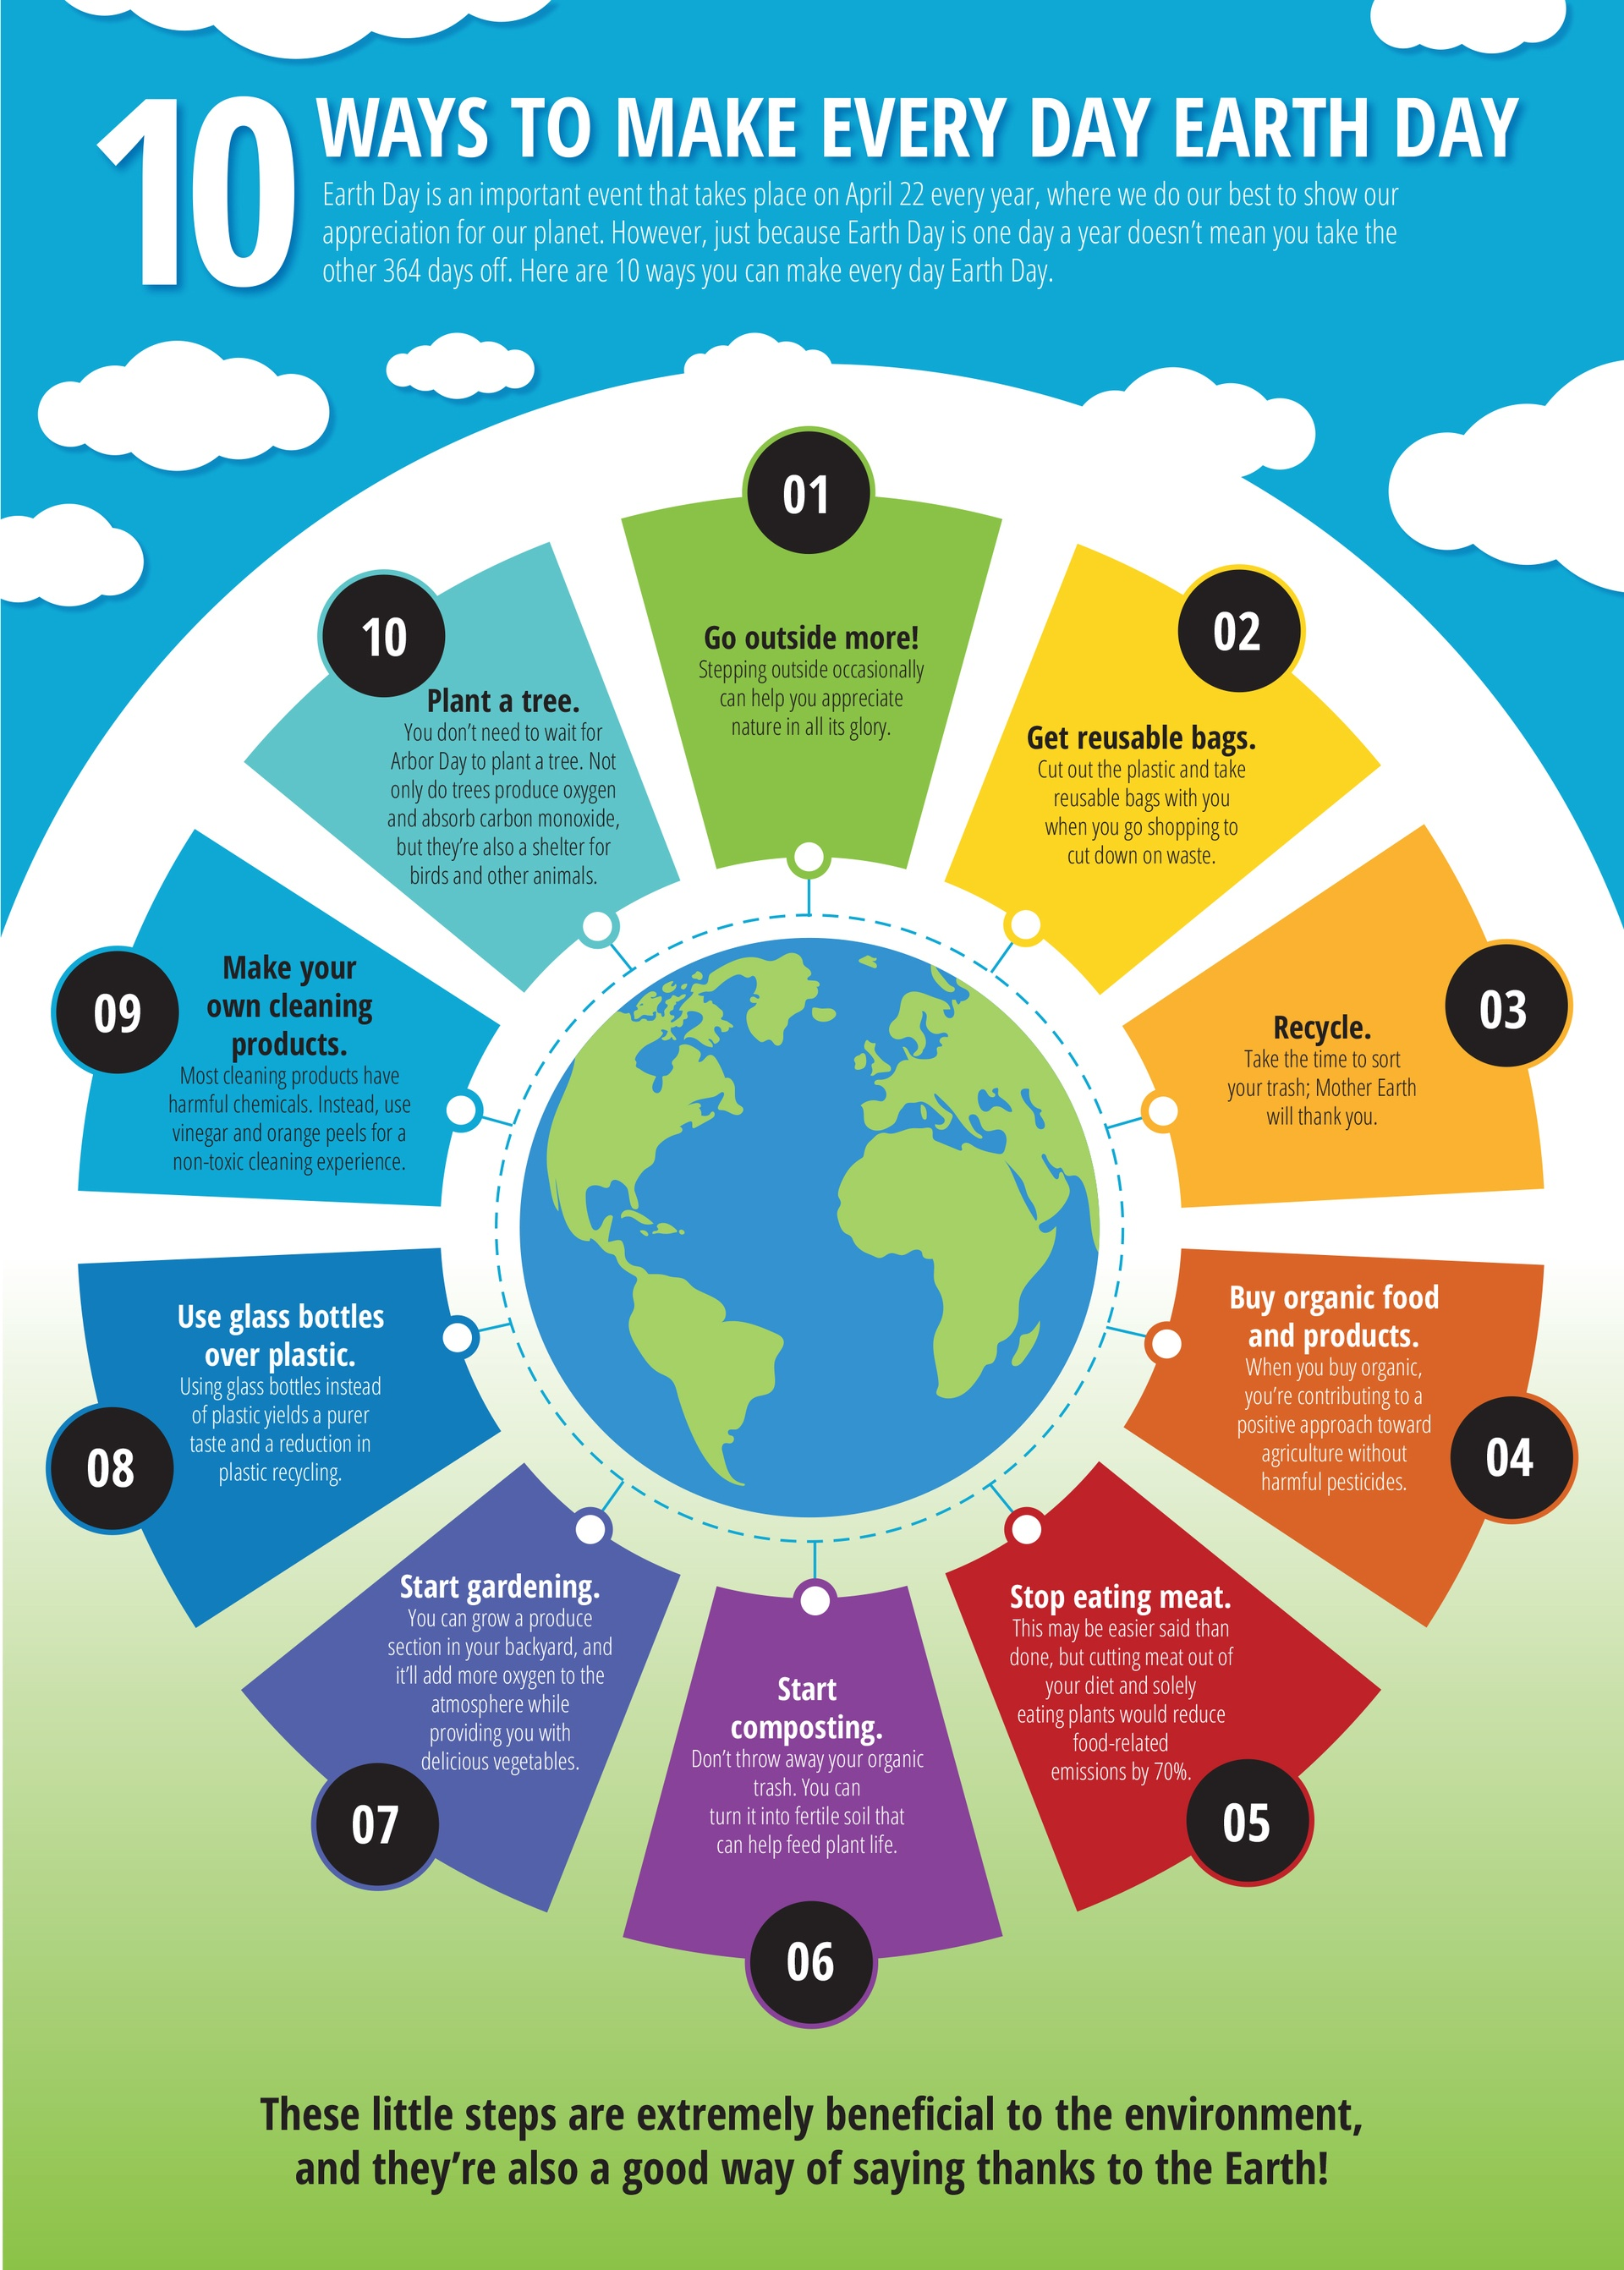 Sarcastic Wallpaper Quotes 10 Ways To Make Everyday Earth Day Infographic E